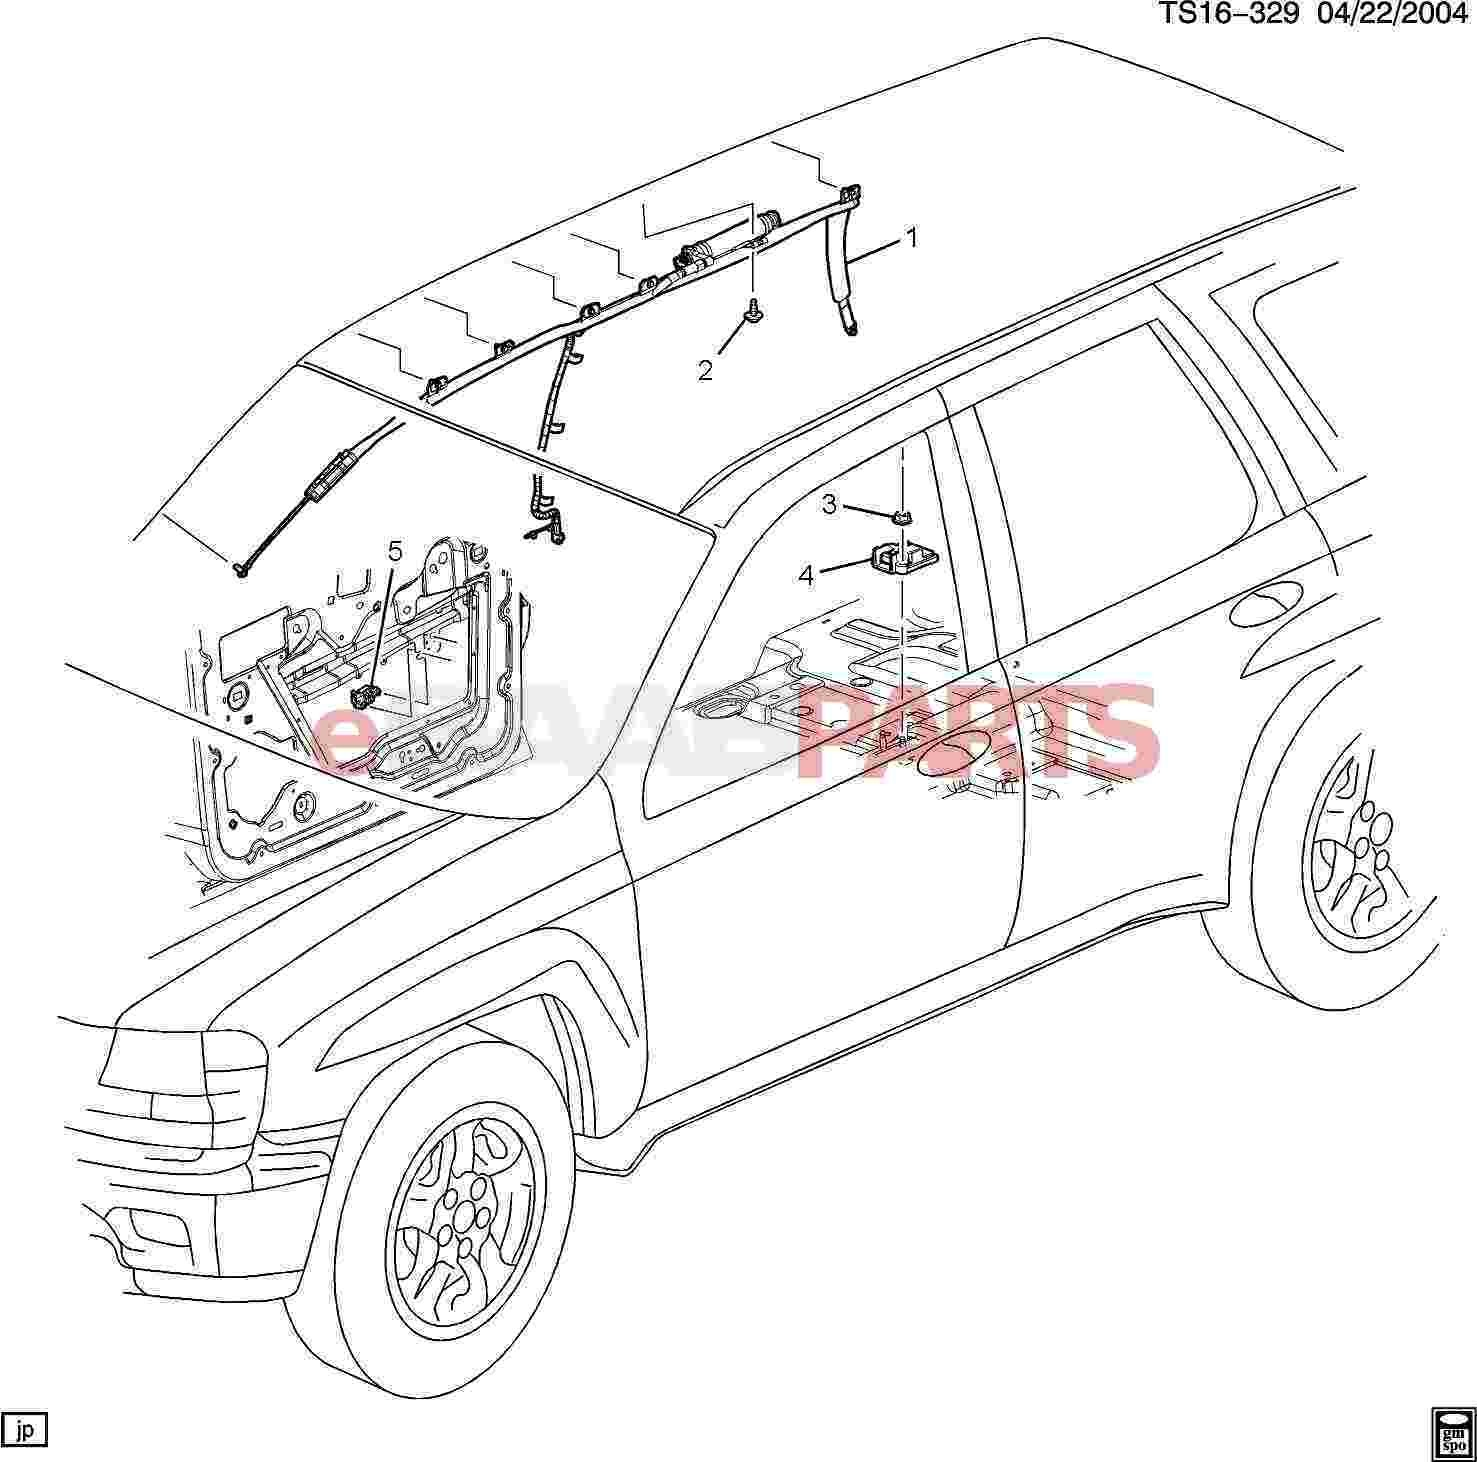 Diagram Of Car Exterior Parts ] Saab Nut Hfh M6x1 5 85thk 14 2 O D 10 Zor Genuine Of Diagram Of Car Exterior Parts